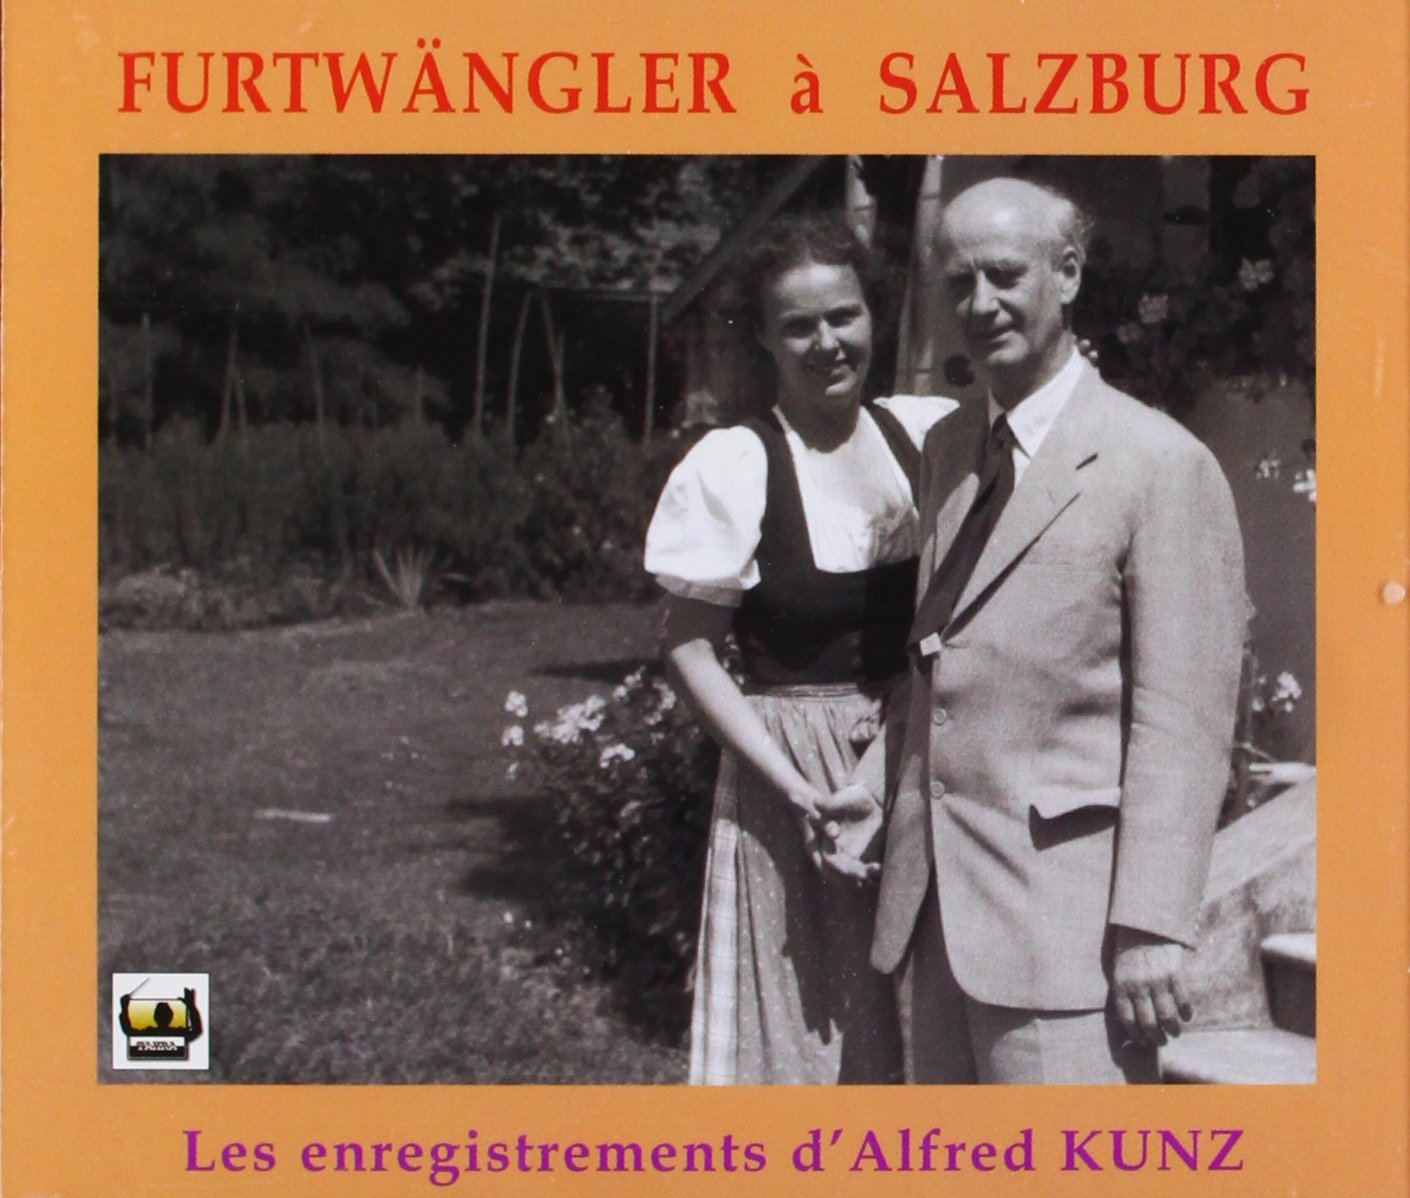 Furtwangler at Salzburg Fest                                                                                                                                                                                                                                                    <span class=